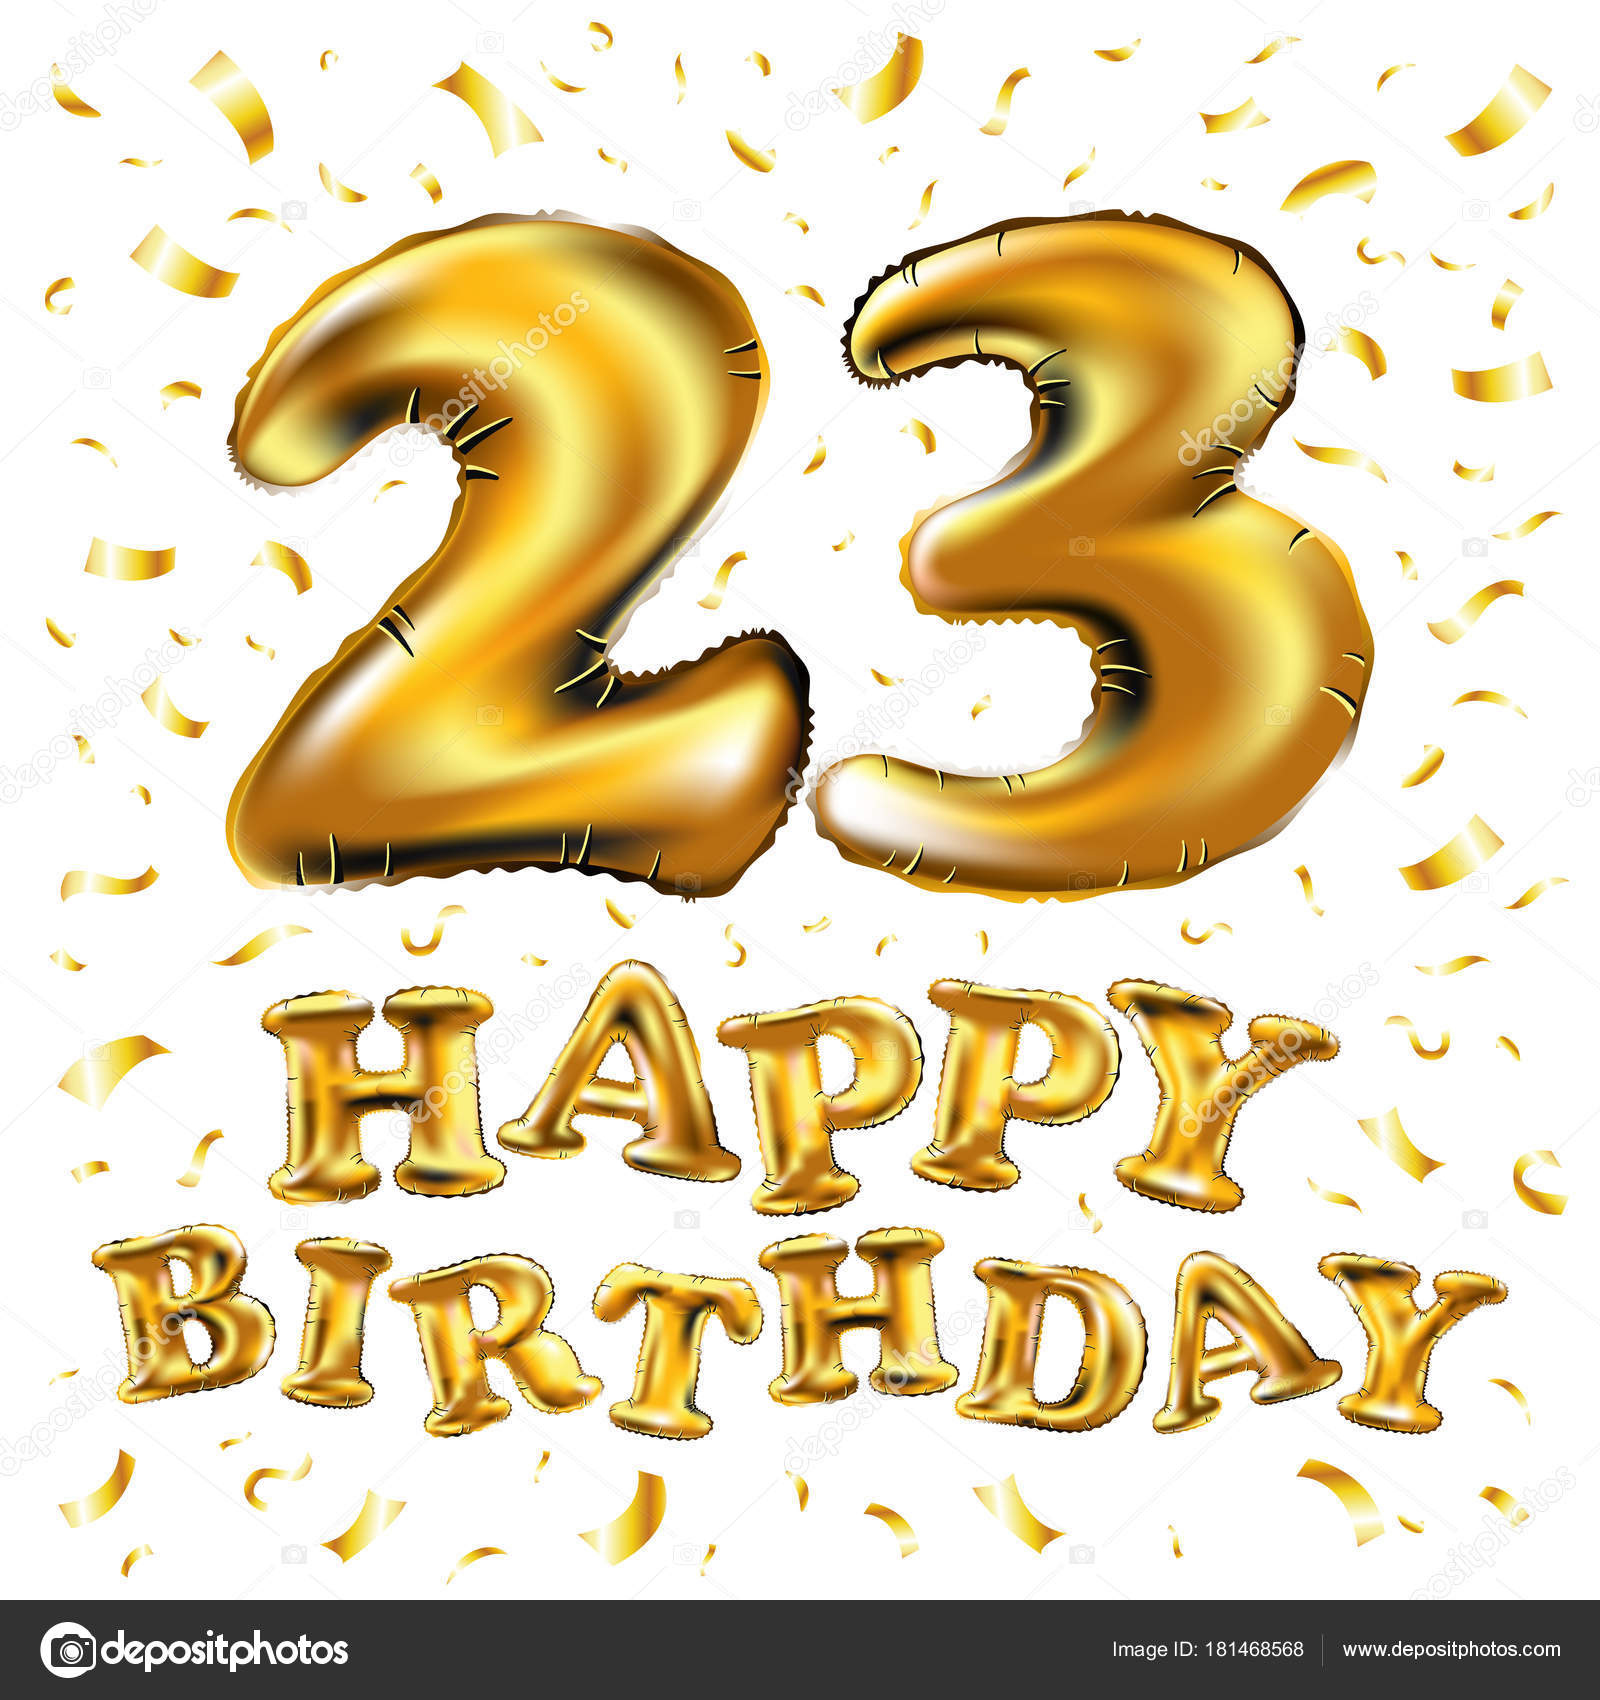 Vector Happy Birthday 23rd Celebration With Gold Balloons And Golden Confetti Glitters 3d Illustration Design